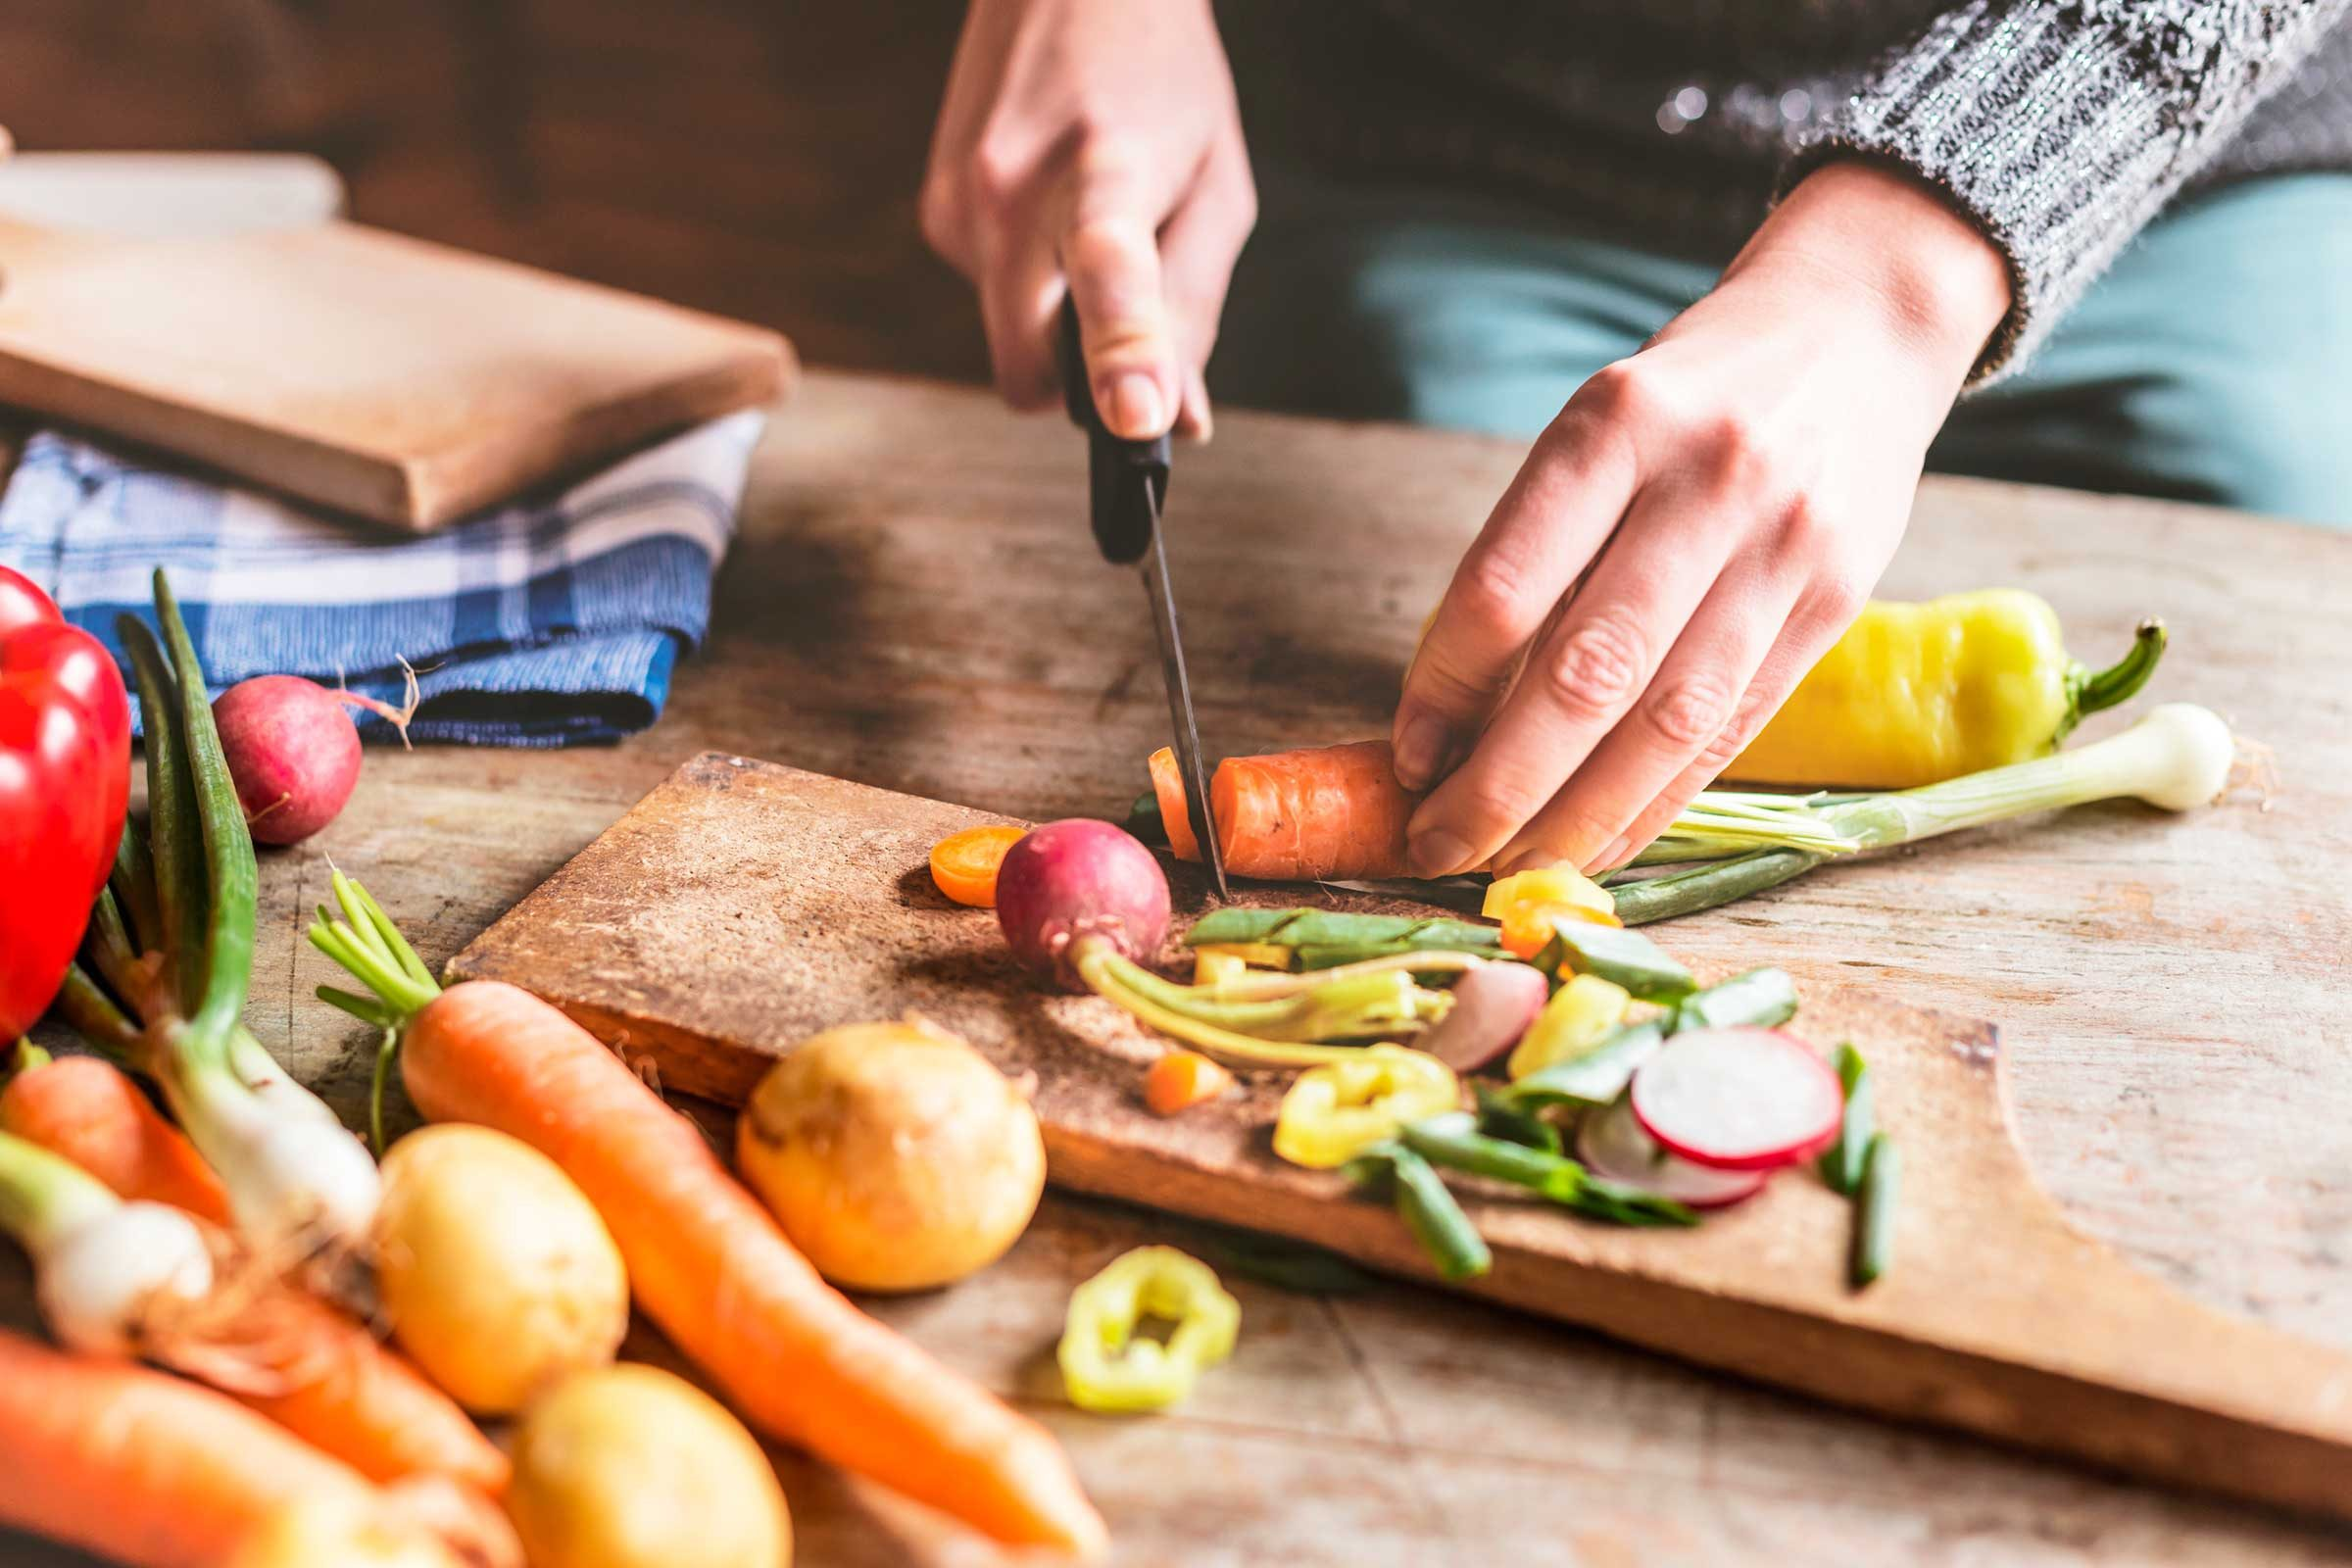 how can we make less food waste